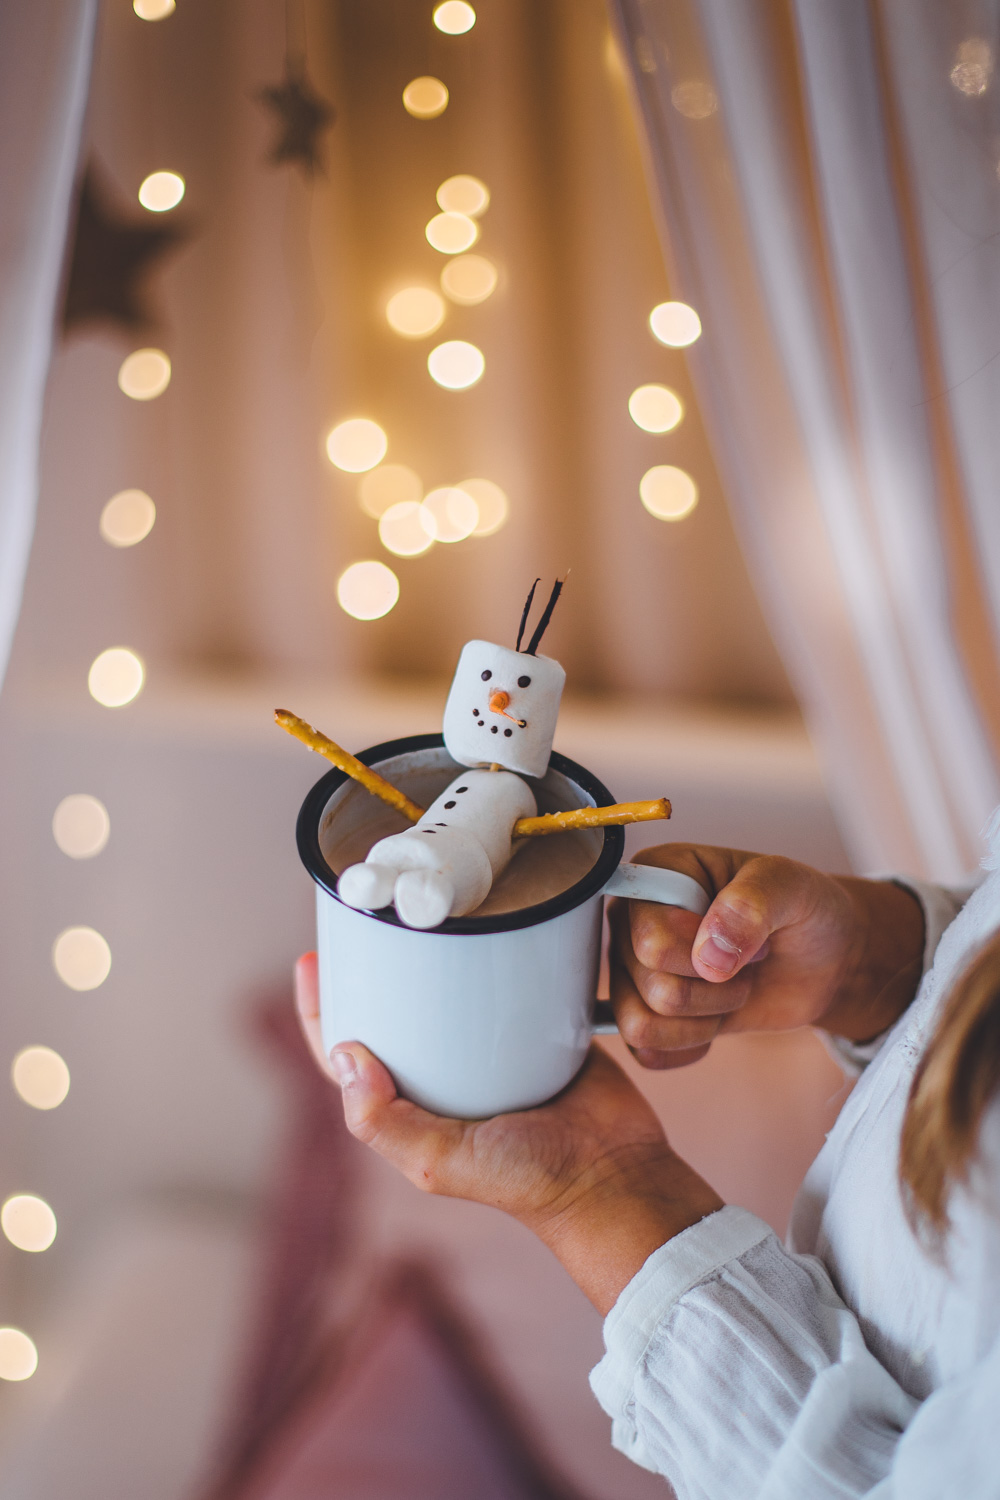 Snowman made with Vegan Marshmallows - by Madeline Lu